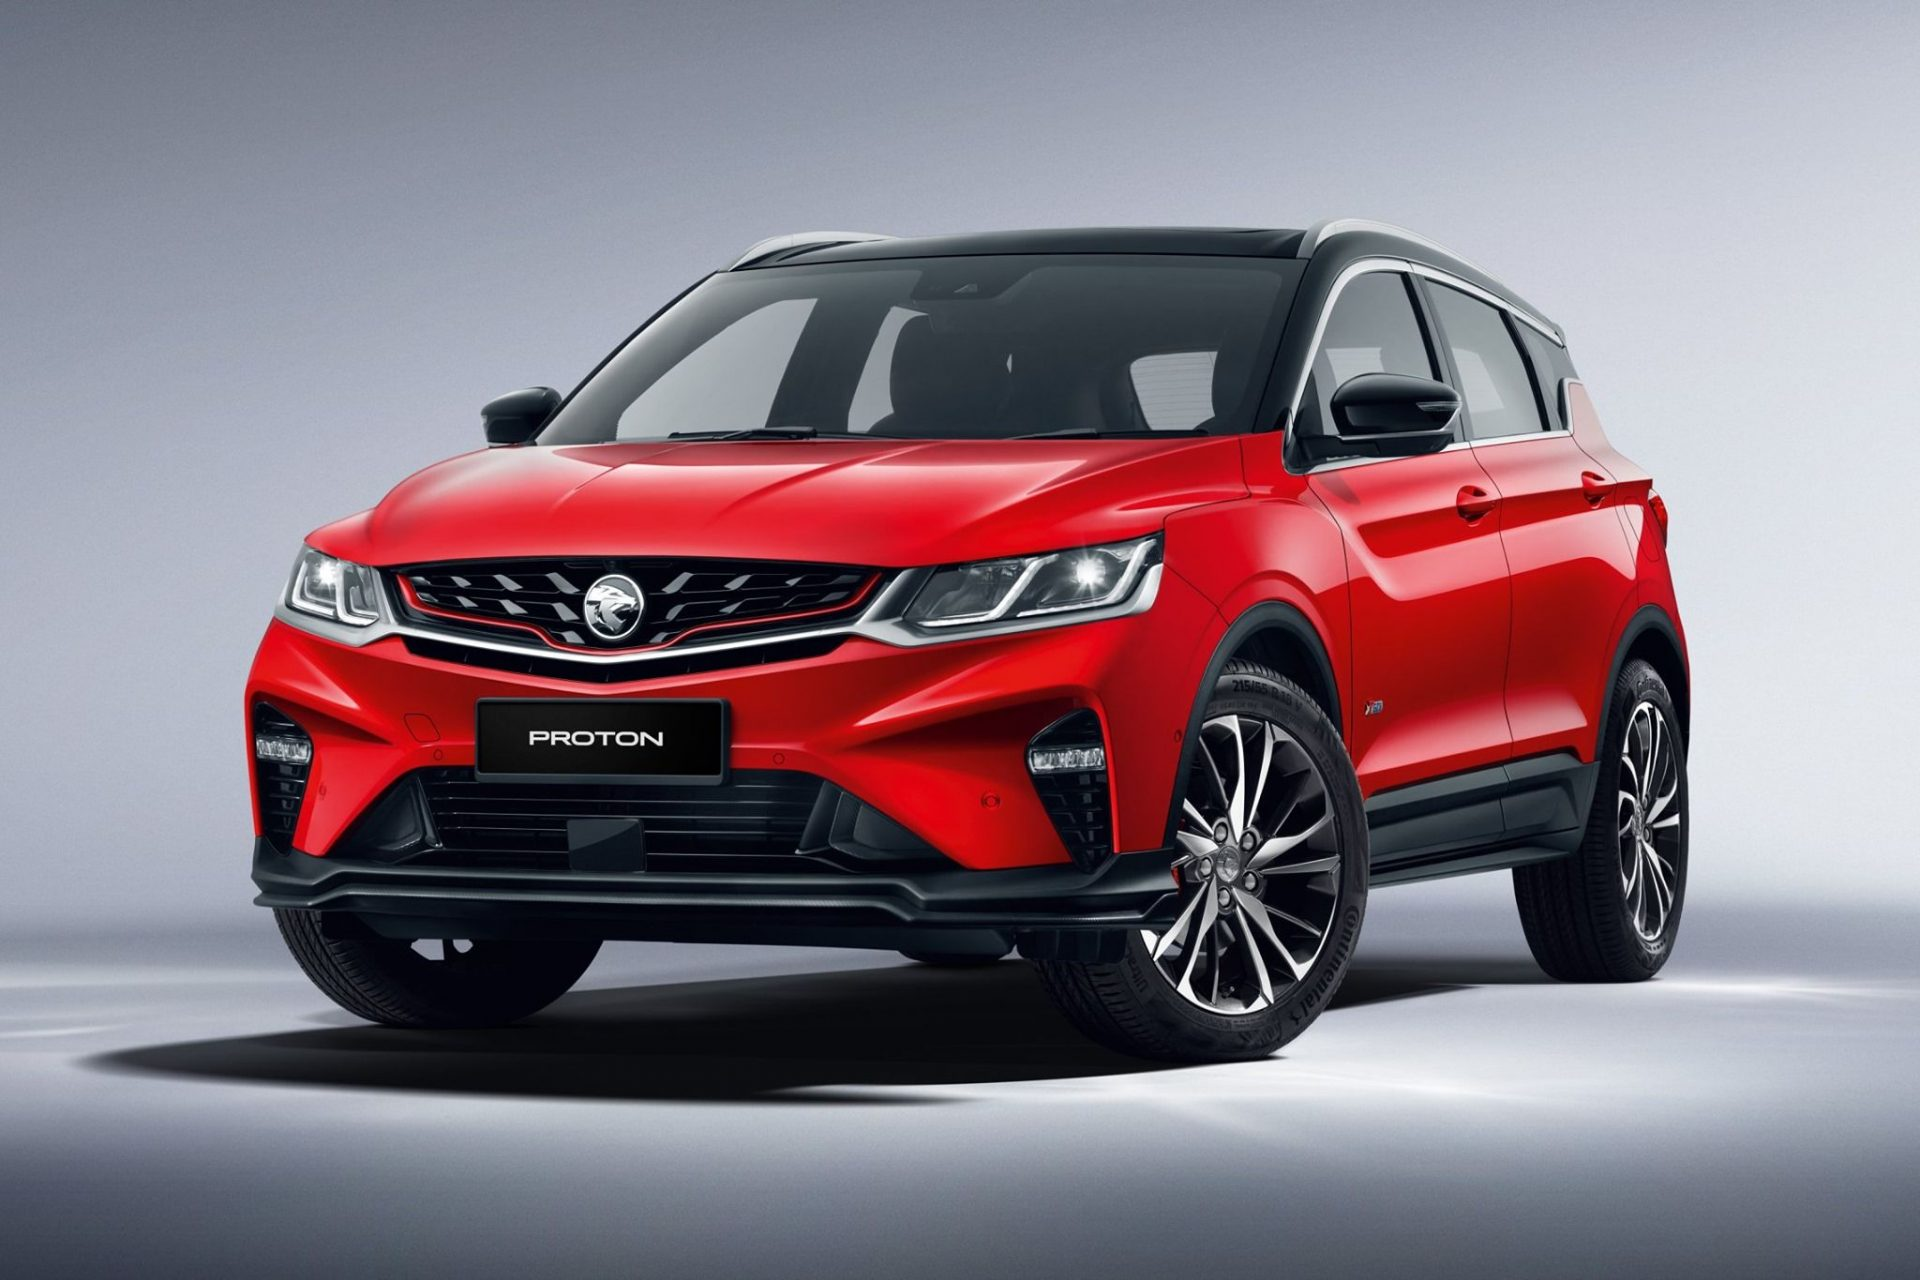 Proton Edar chief executive officer Roslan Abdullah said the sport utility vehicle has exceeded the initial booking target of 4,000 units, despite not being officially launched yet. — Picture courtesy of Proton